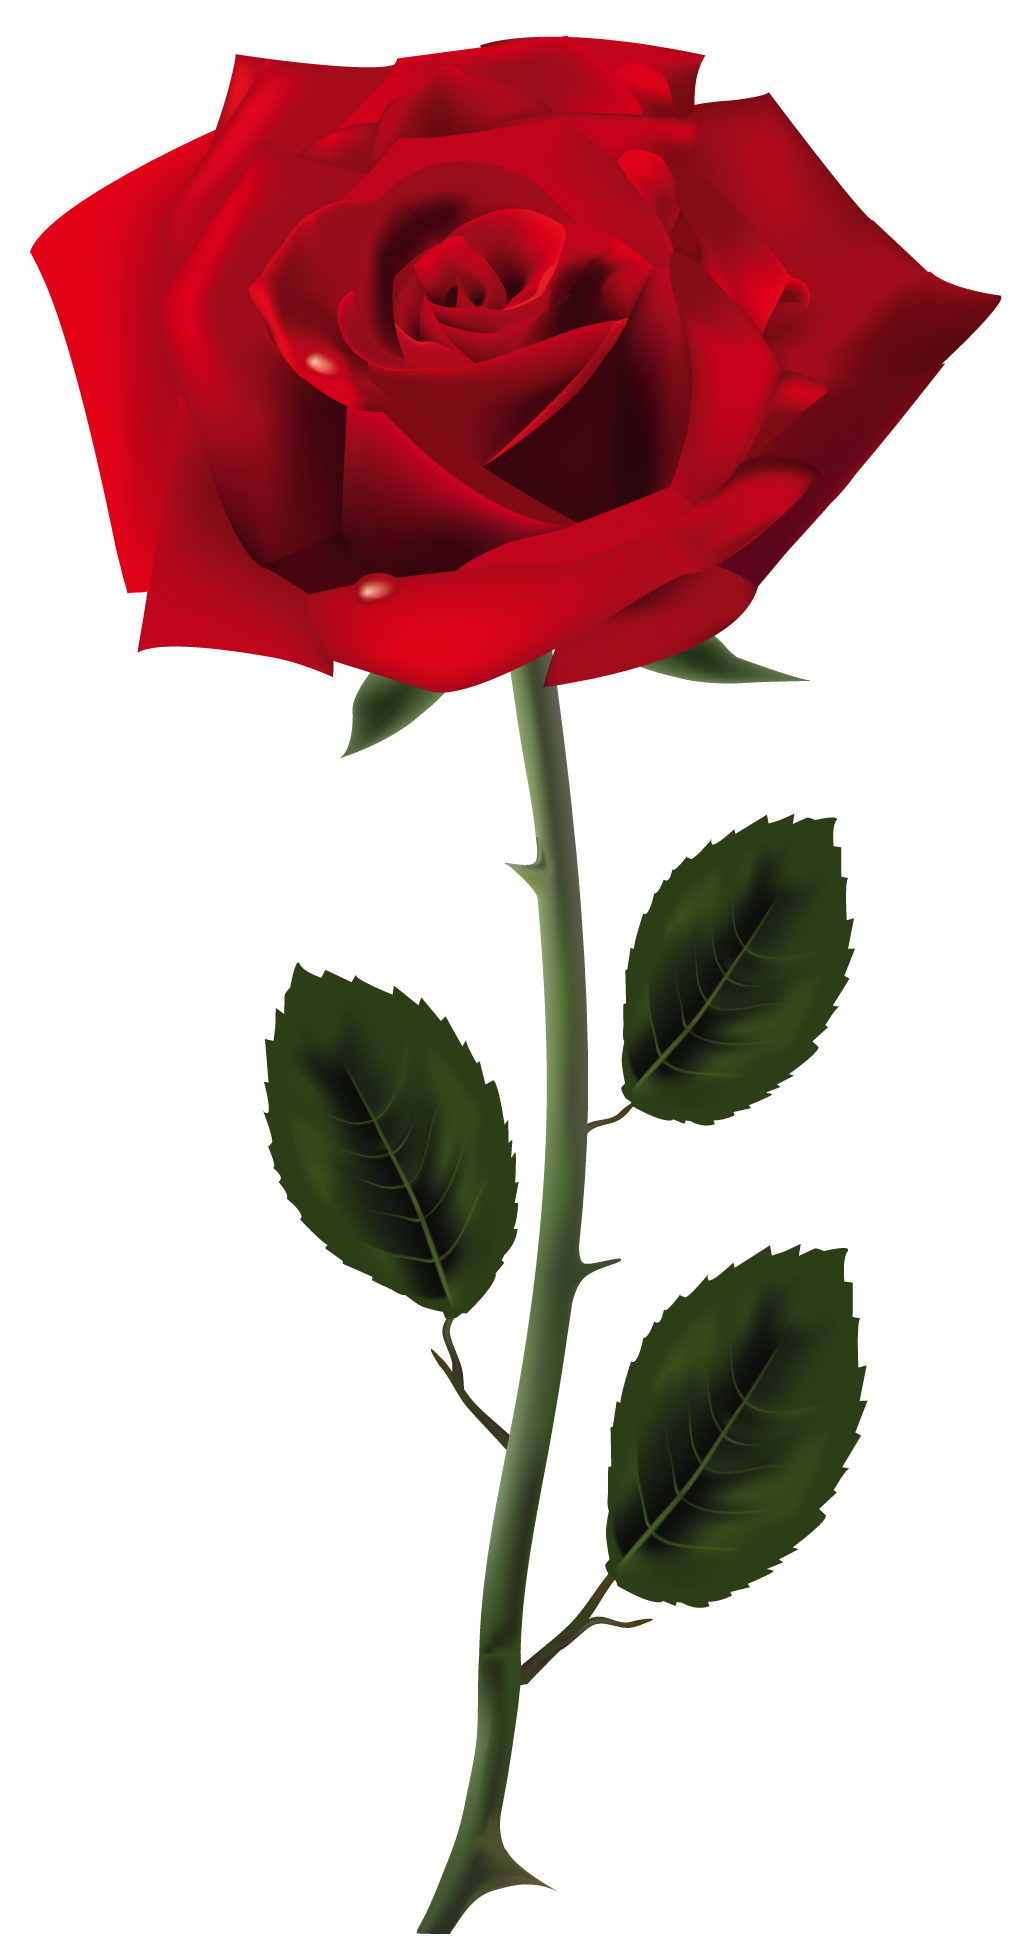 Funeral clipart floral. Red rose png art